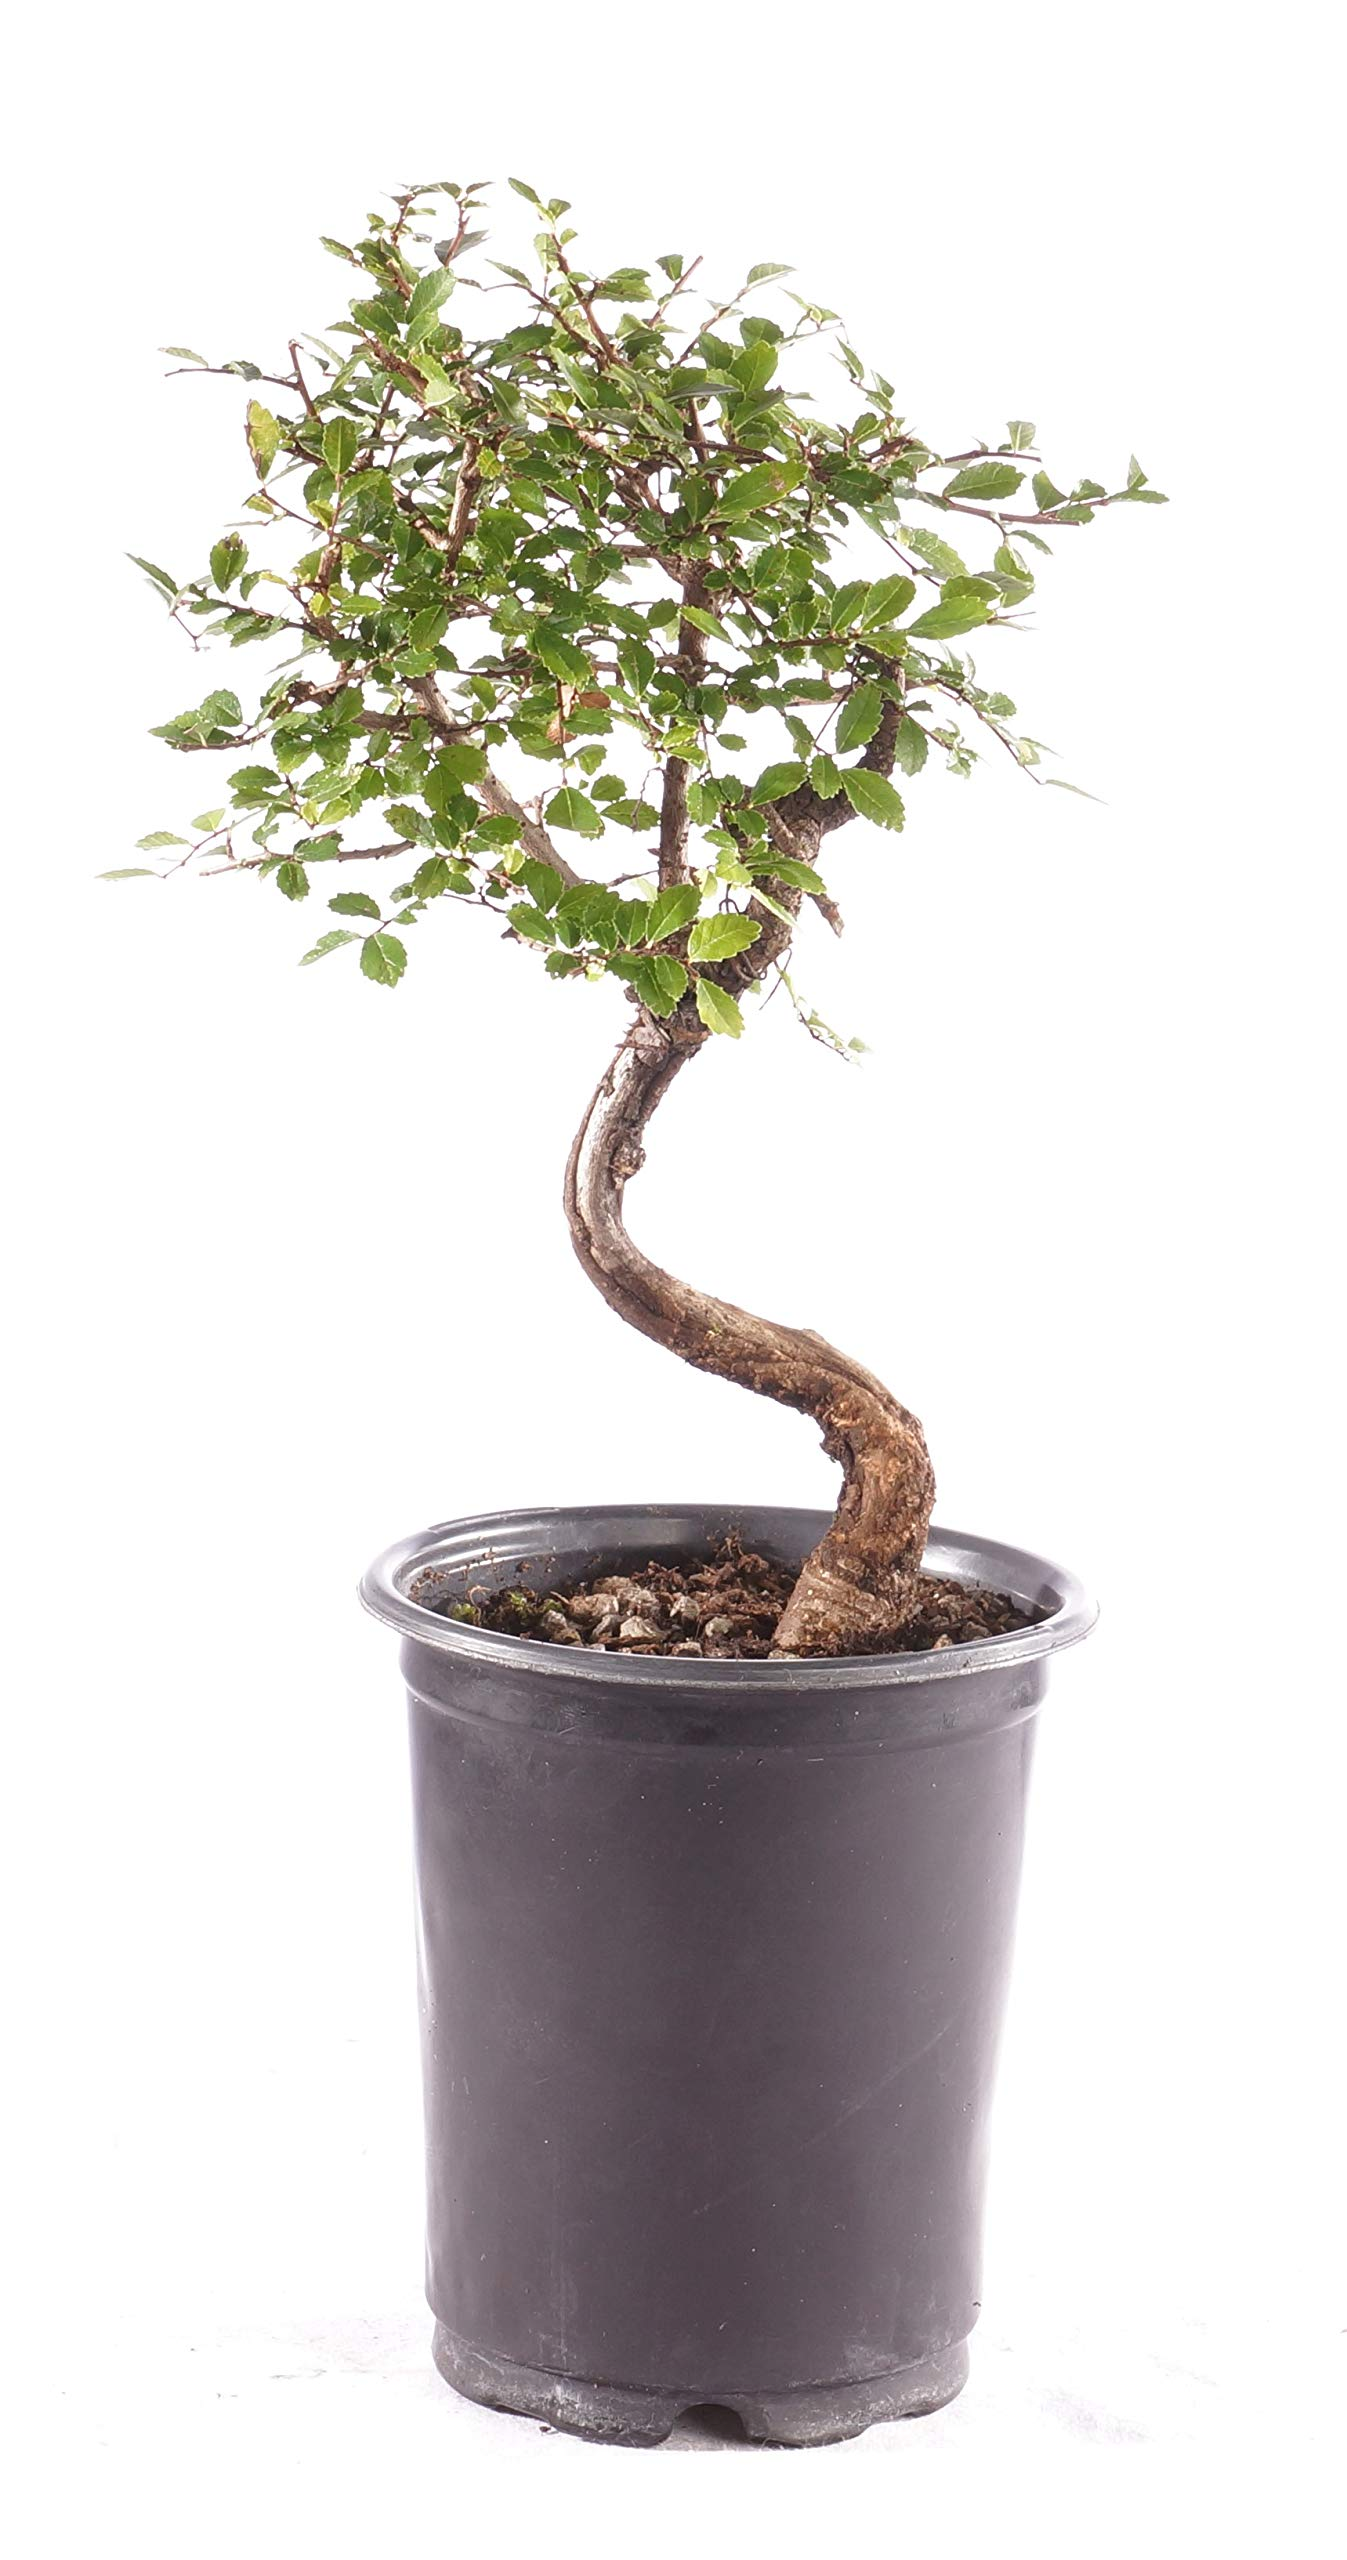 Brussel's Bonsai Live Chinese Elm Outdoor Bonsai Tree 5 Years Old; 6'' - 8'' Tall in Plastic Grower Pot, Small